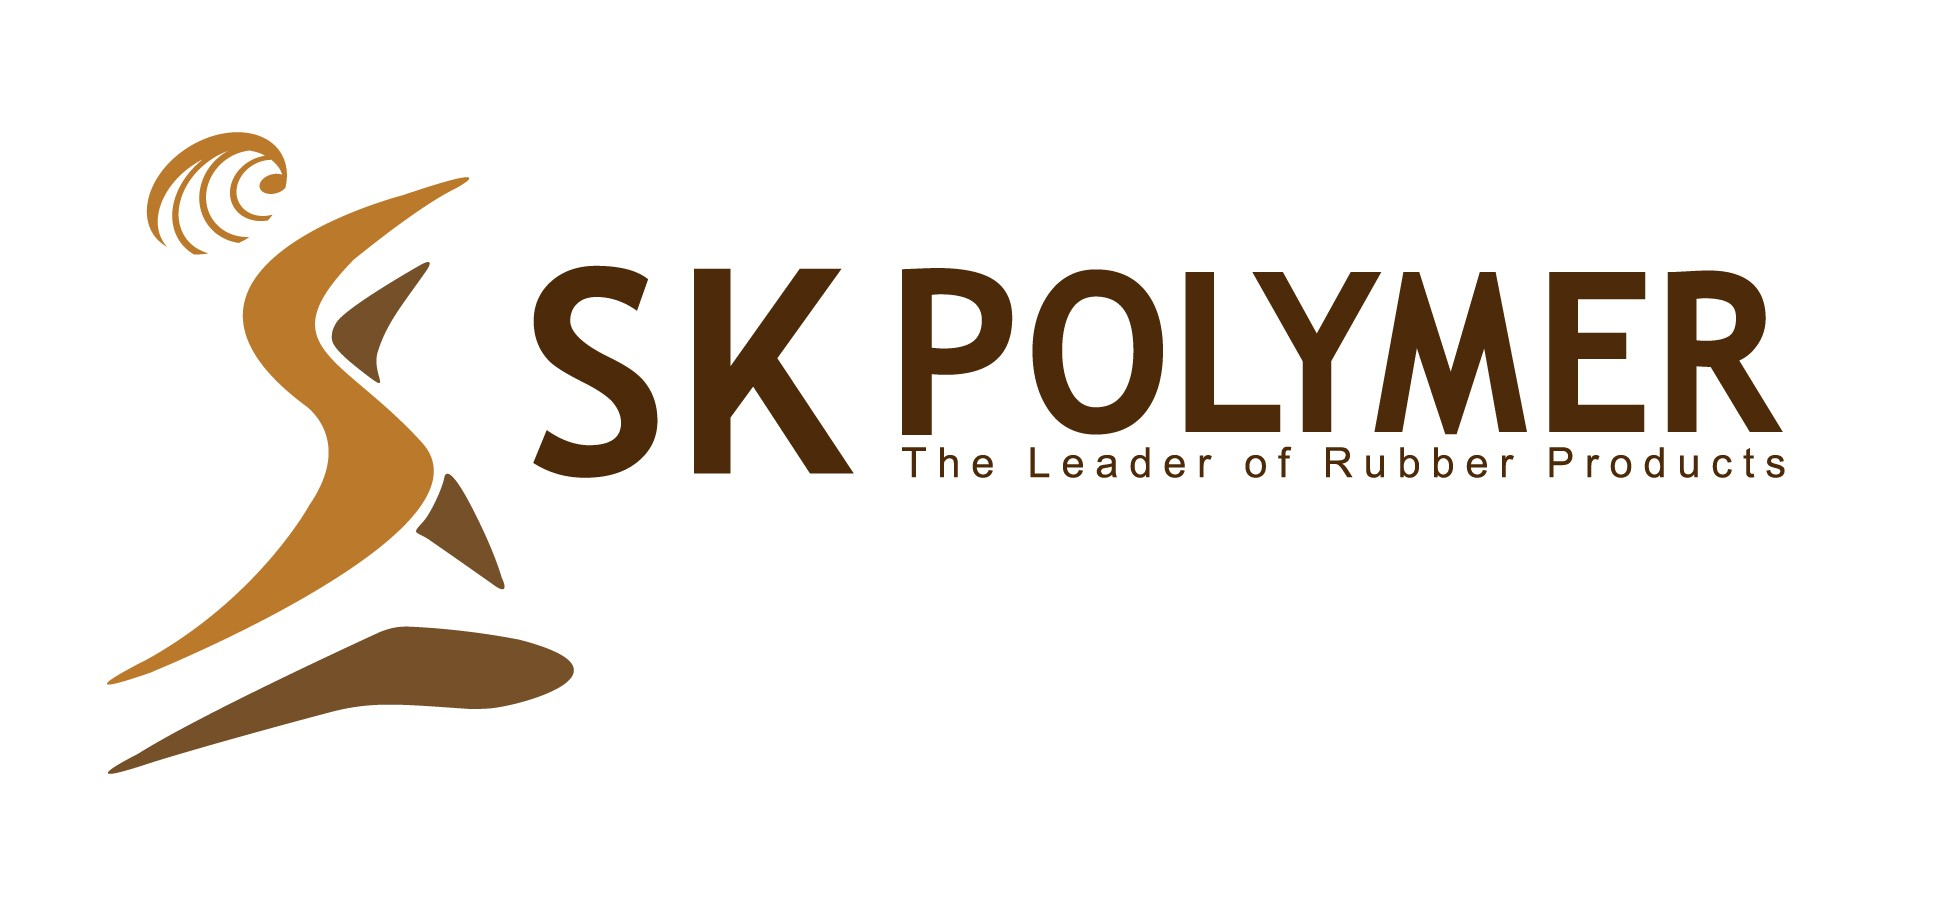 """S.K.Polymer """"The Leader of Rubber Products"""""""